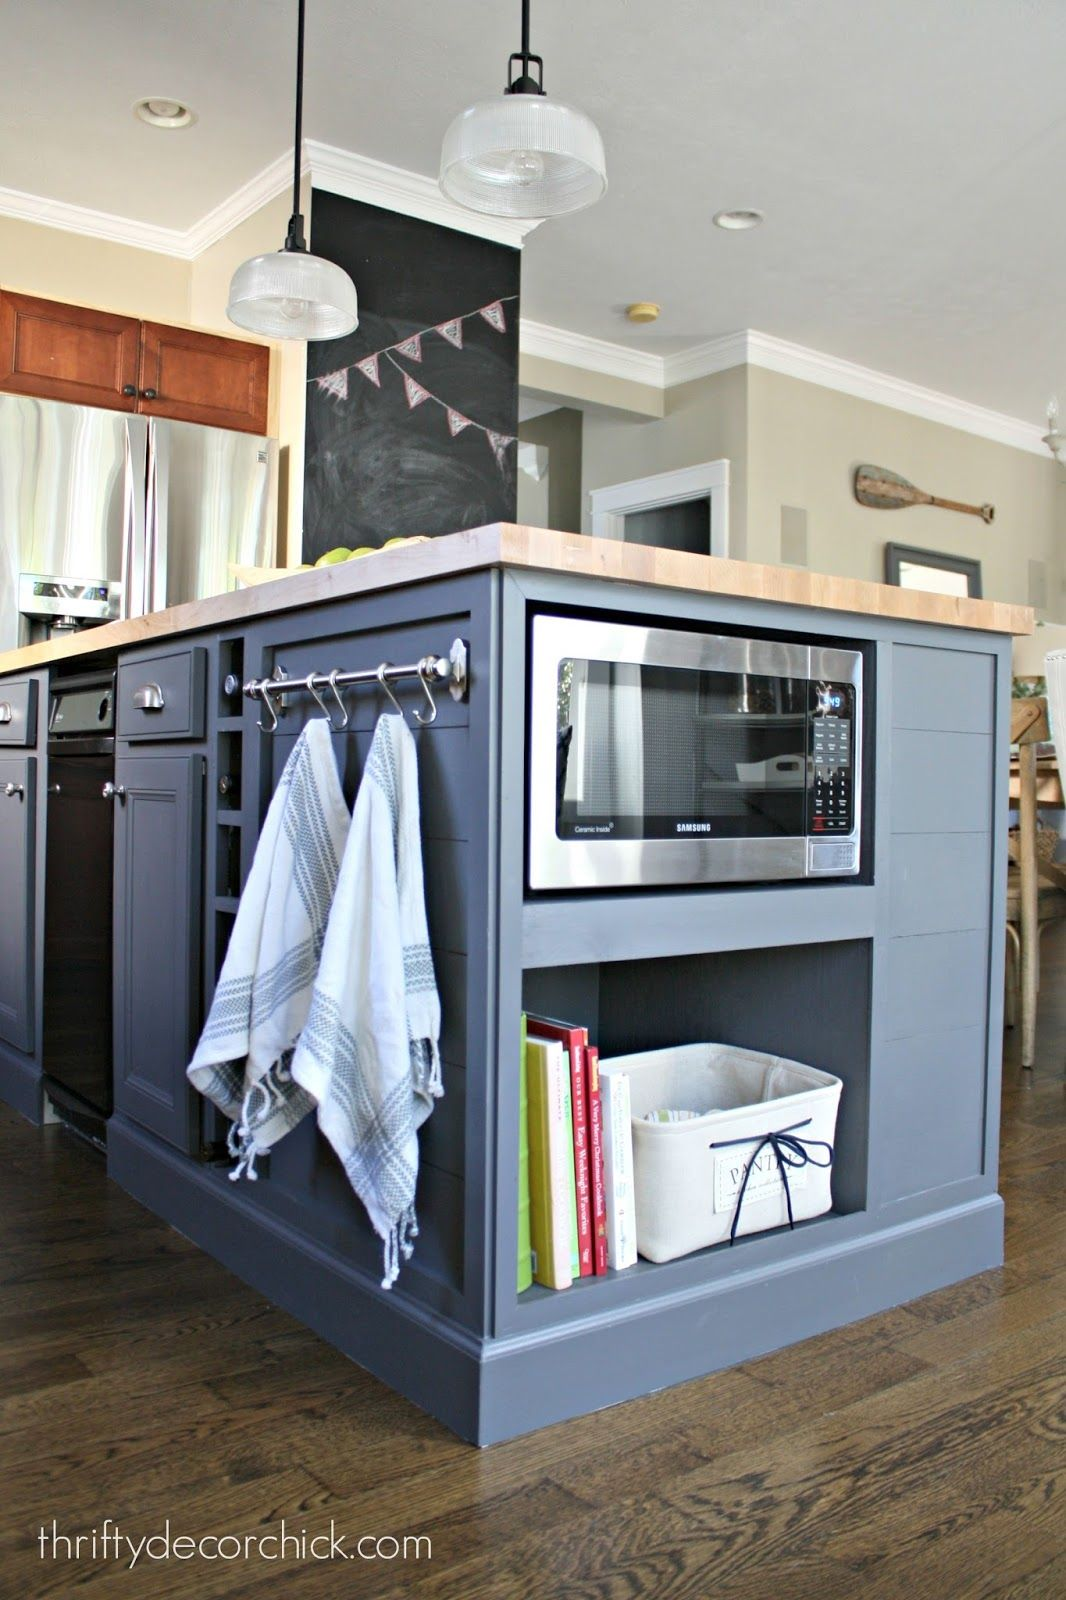 Kitchen Island With Microwave